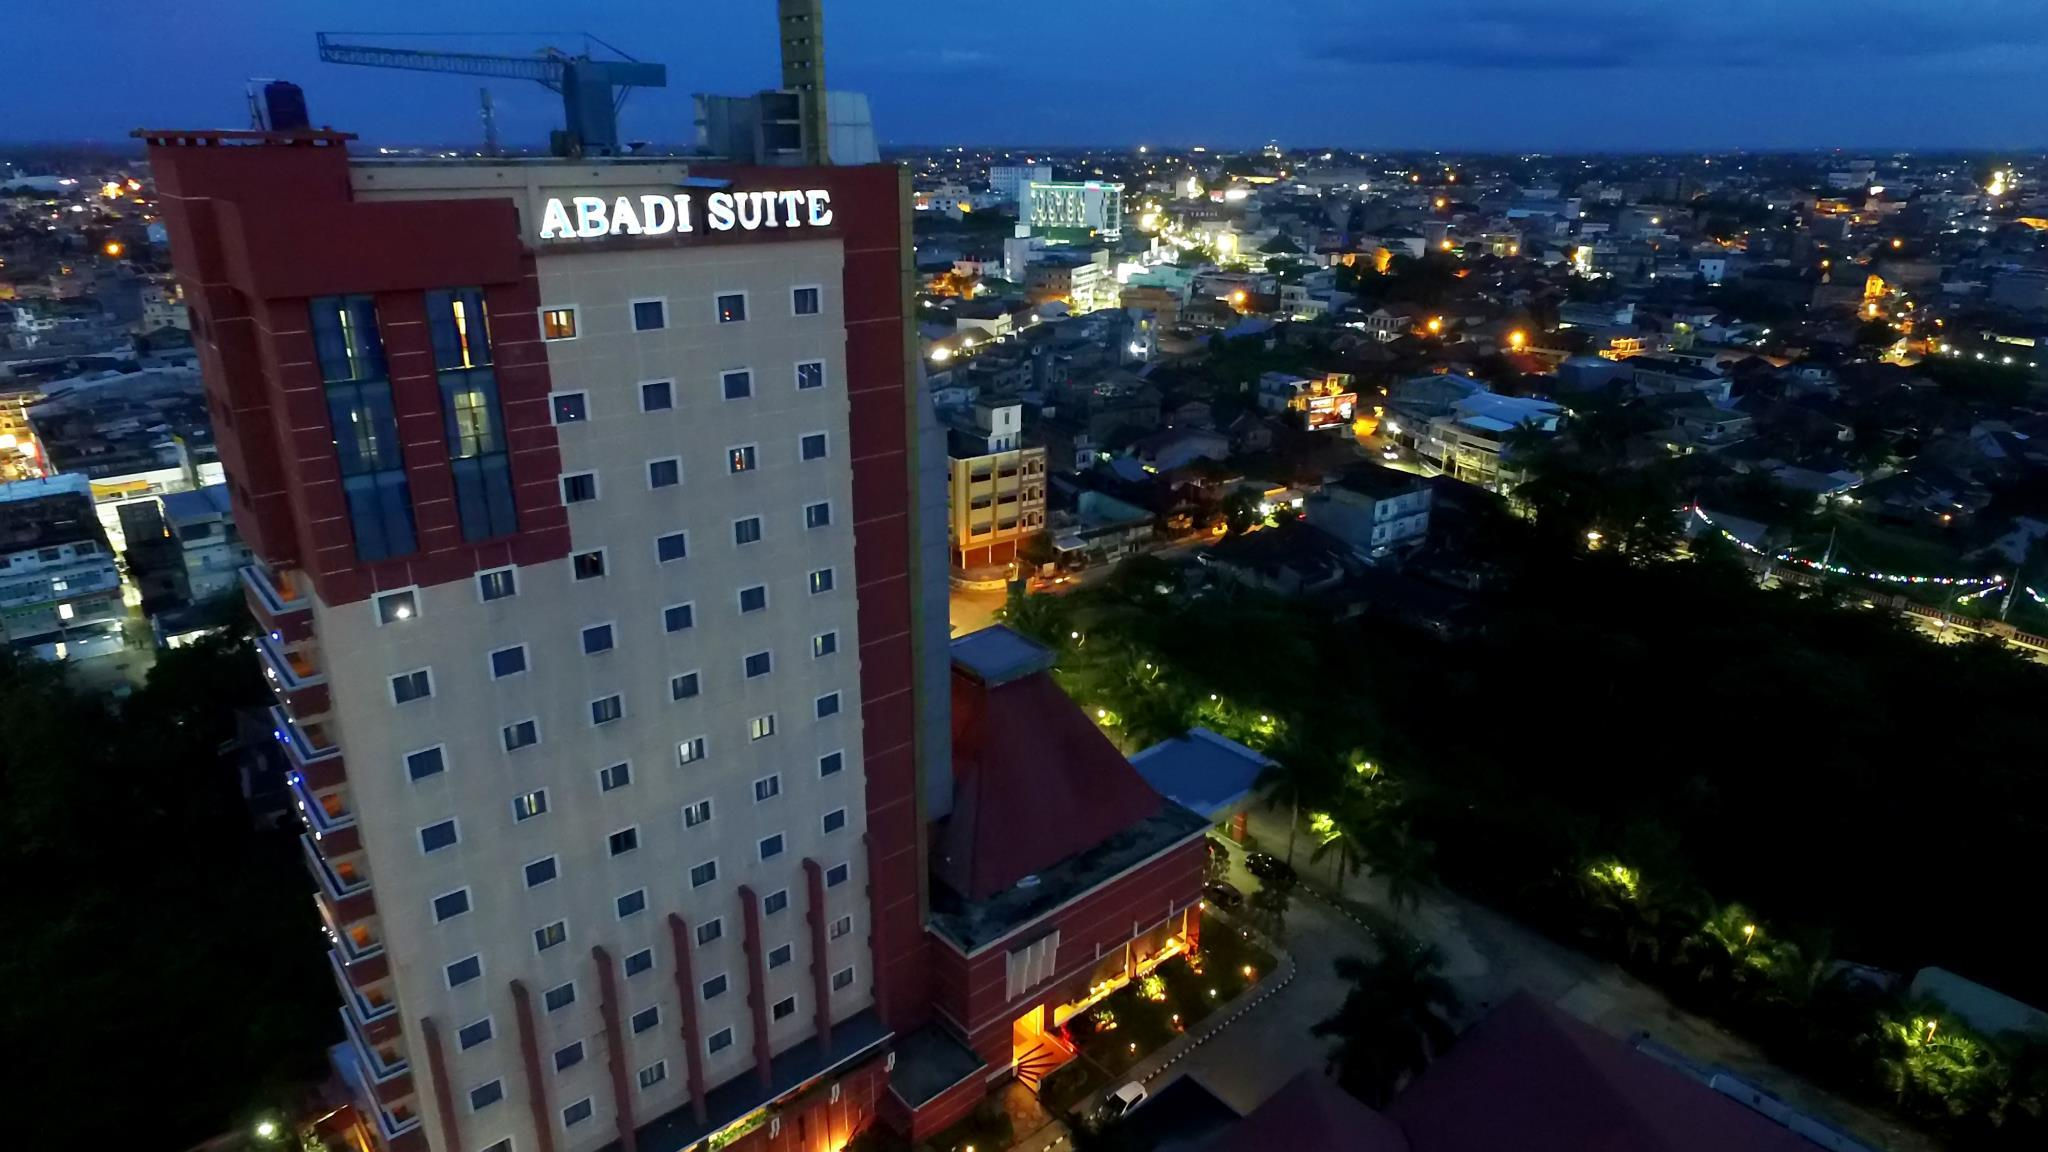 Abadi Suite Hotel And Tower Jambi By Tritama Hospitality